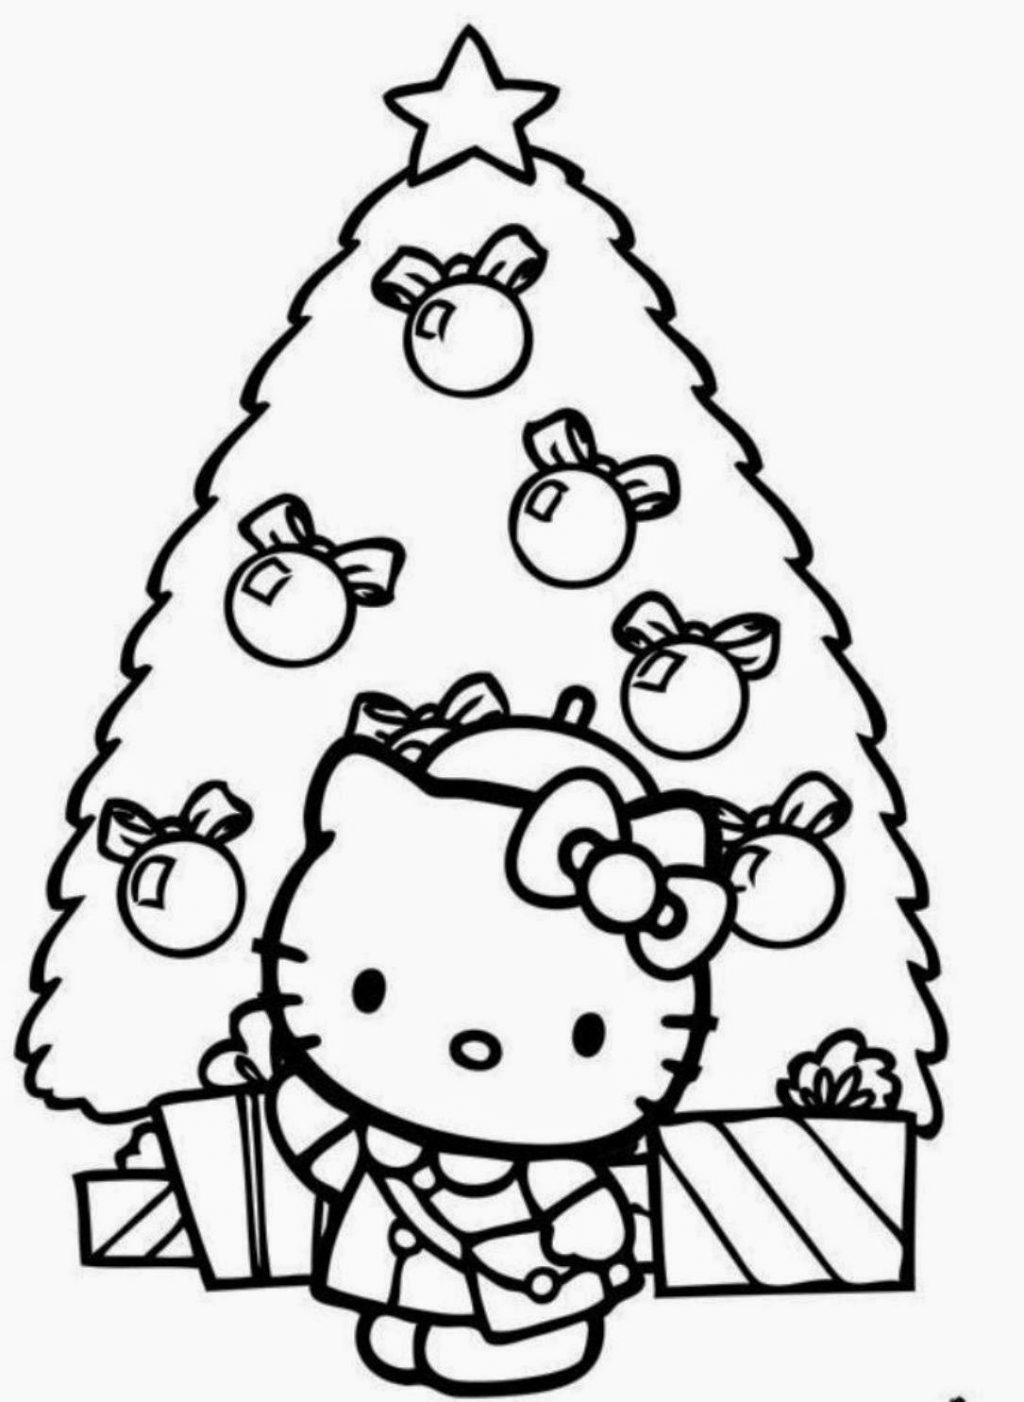 Ausmalbilder Hello Kitty Baby : Kitty Coloring Pages Free Download Best Kitty Coloring Pages On